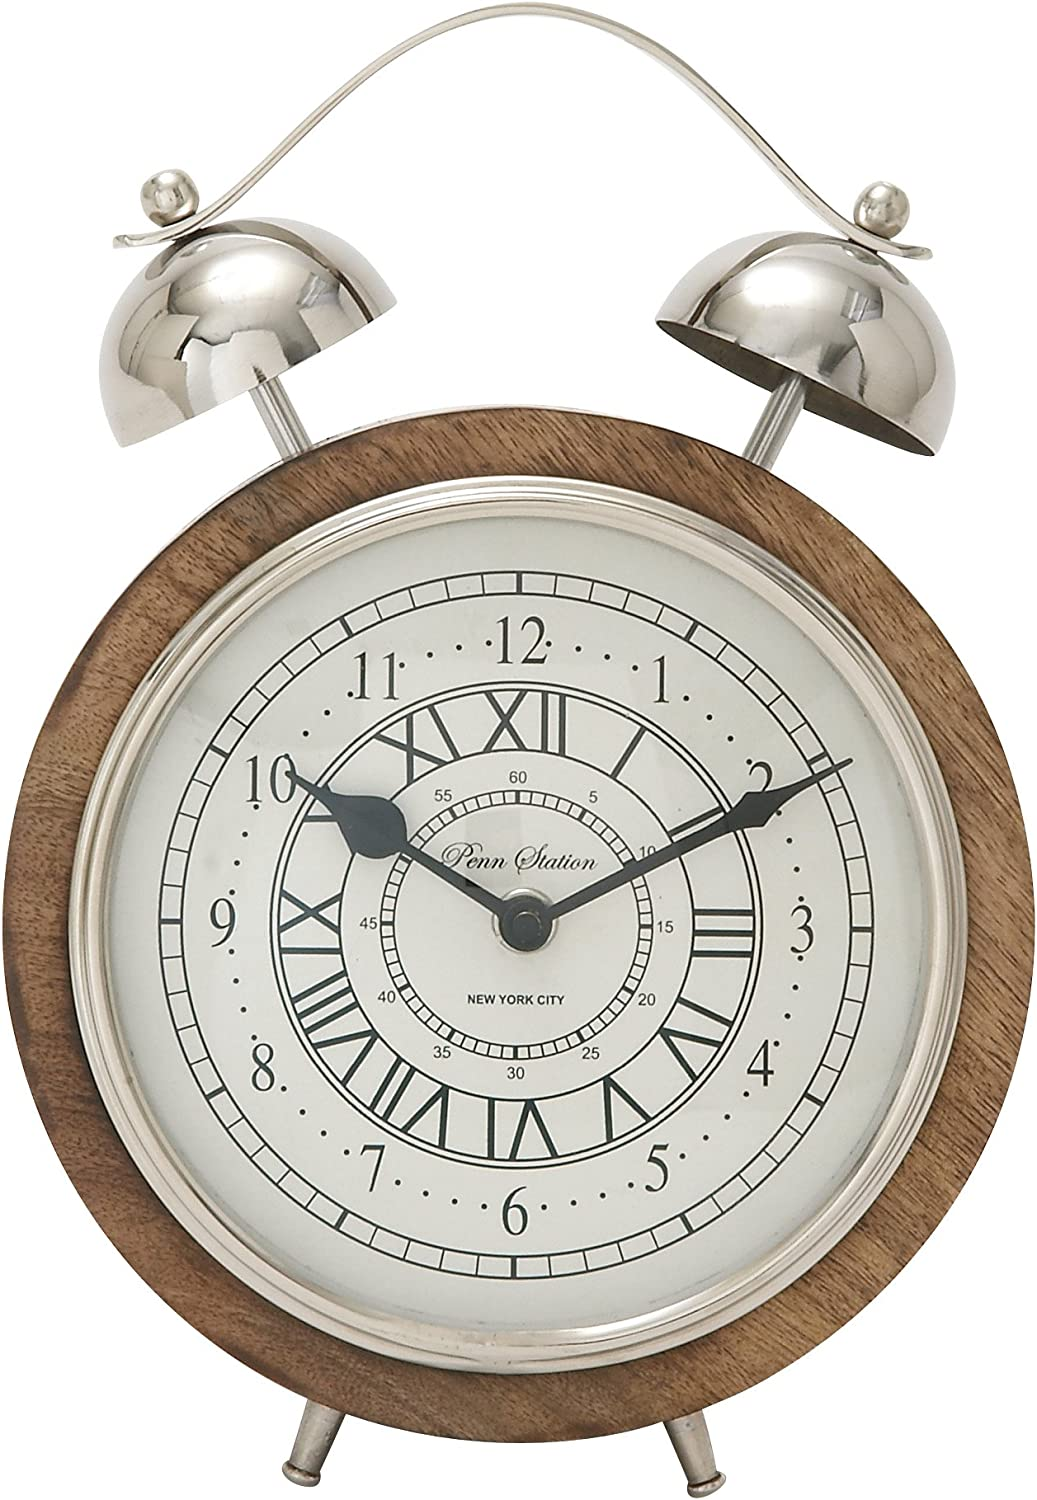 Deco Popular popular 79 40656 Direct stock discount Outstanding Wood Stainless Table Clock Steel